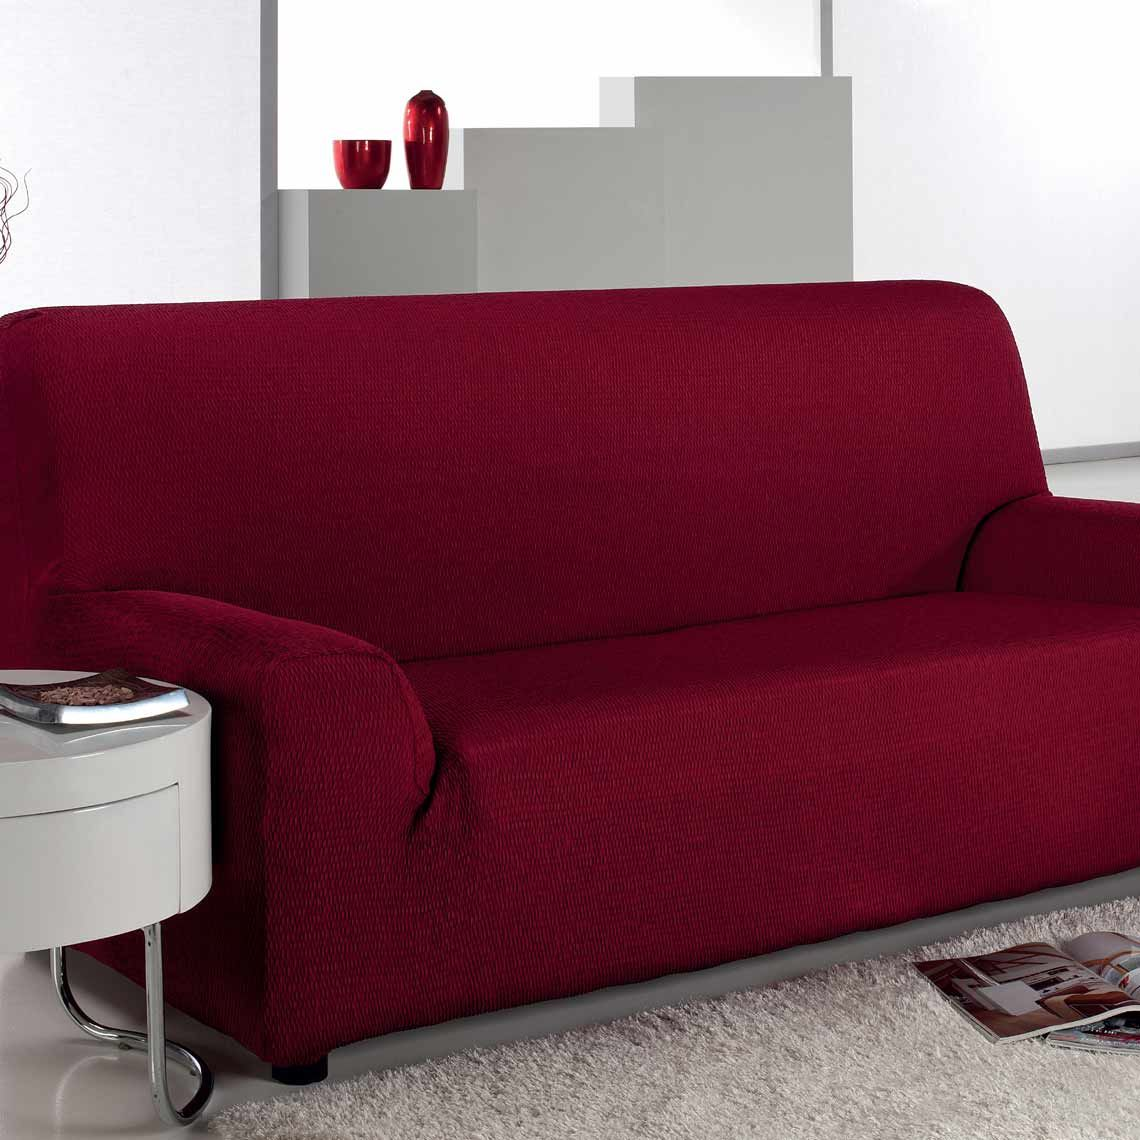 Sofa And Armchair Covers Sofa And Loveseat Covers For New Home Look With Stylish Feel